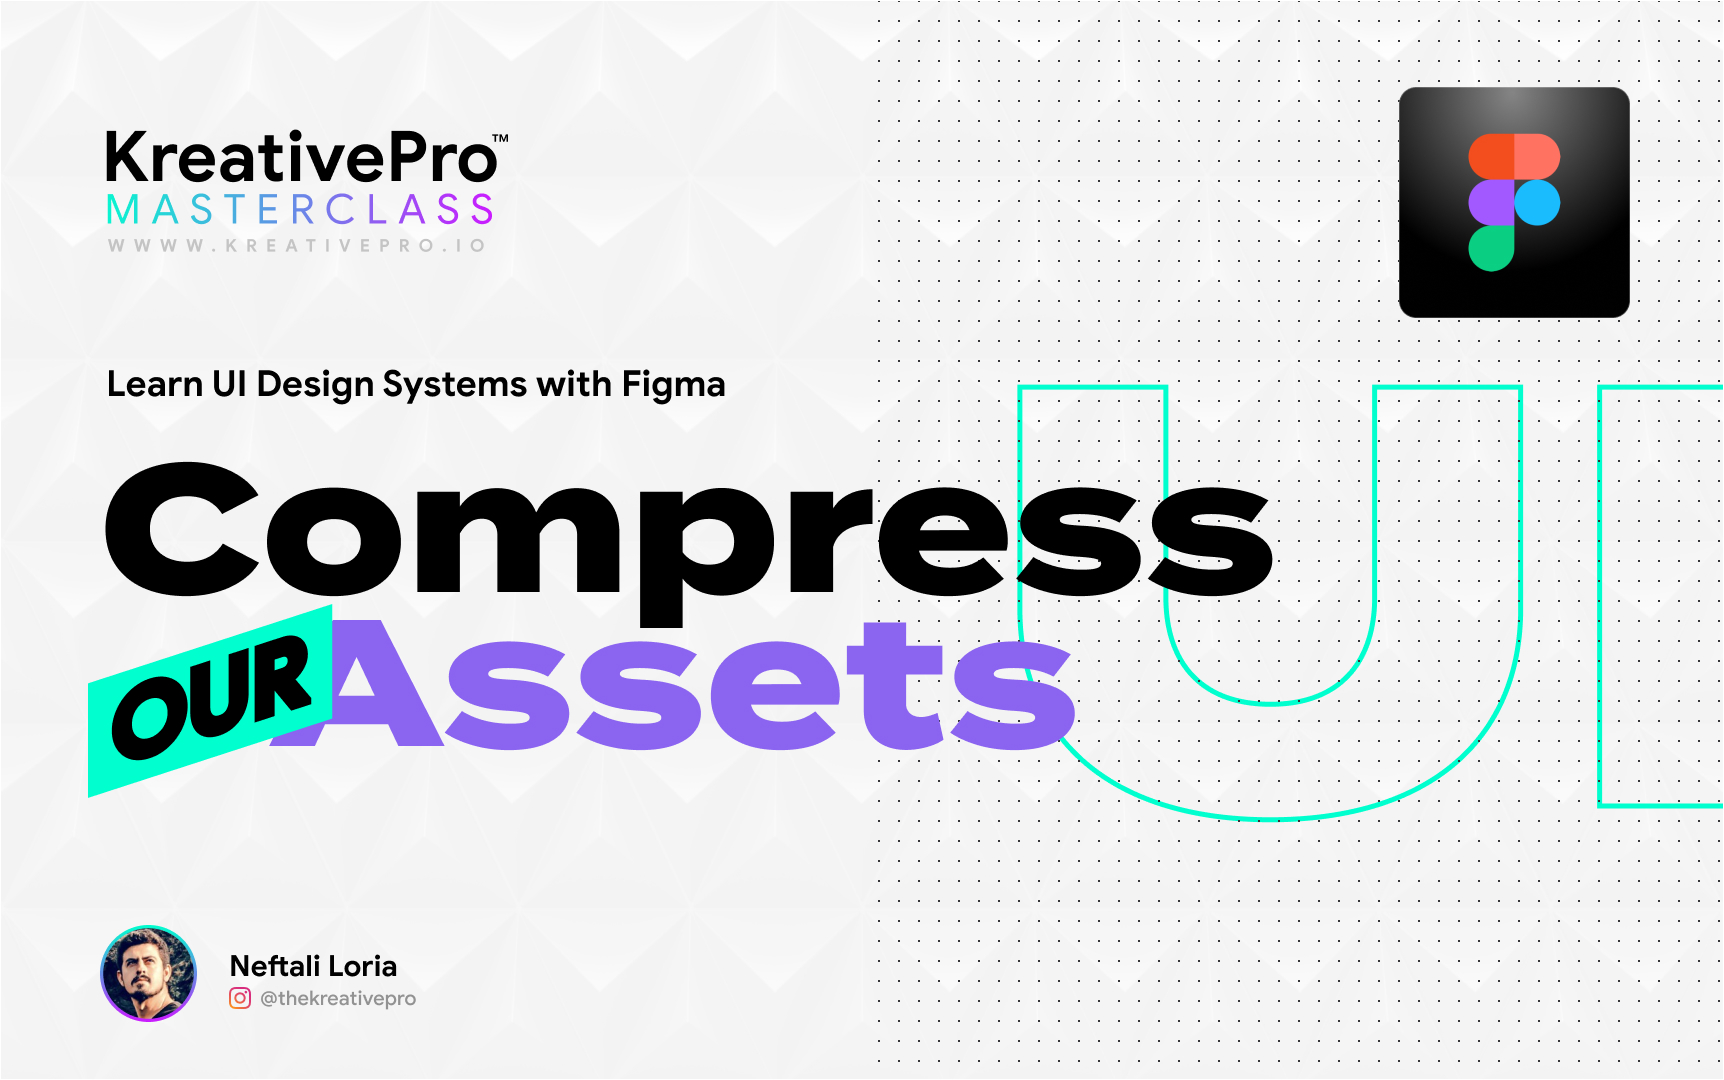 UI 4.2 - Compress our Assets